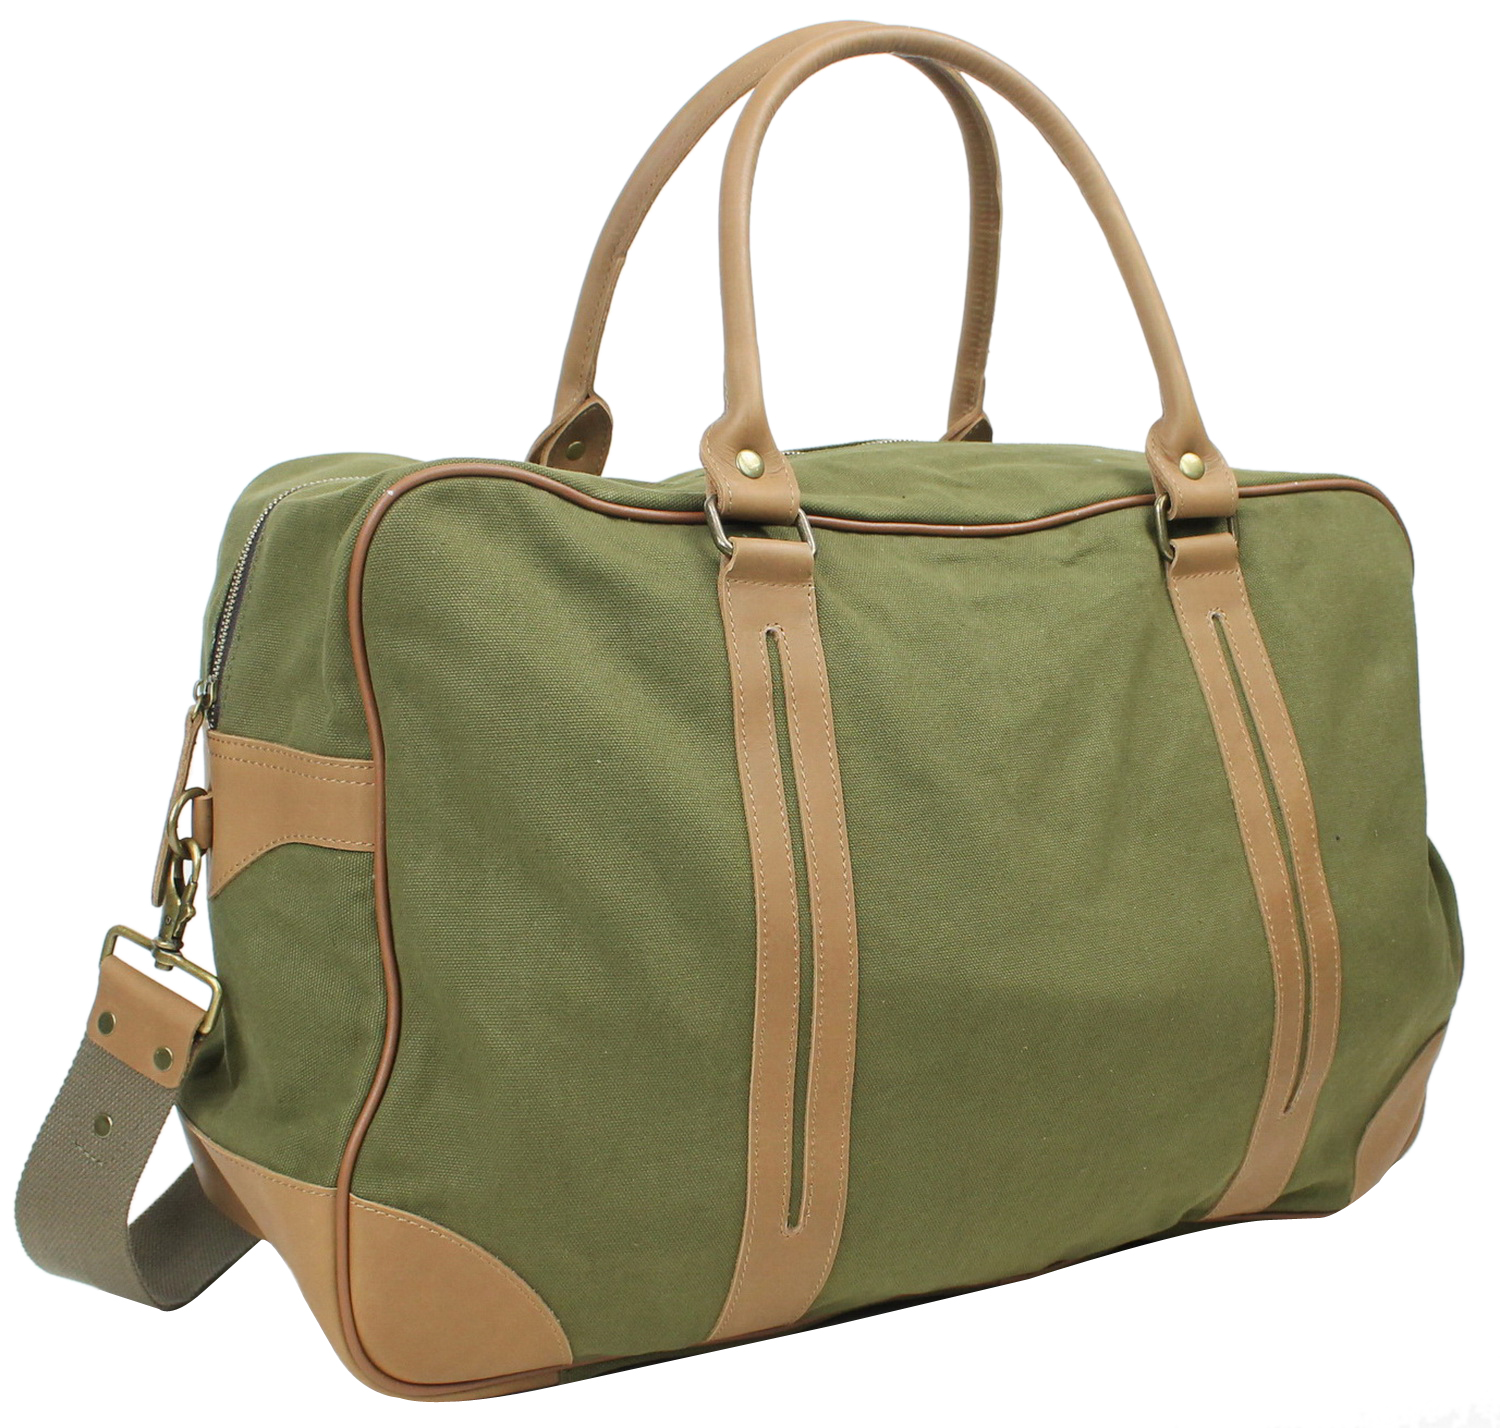 Vagabond Traveler Classic Large Canvas Duffle Travel Bag C77.GRN by